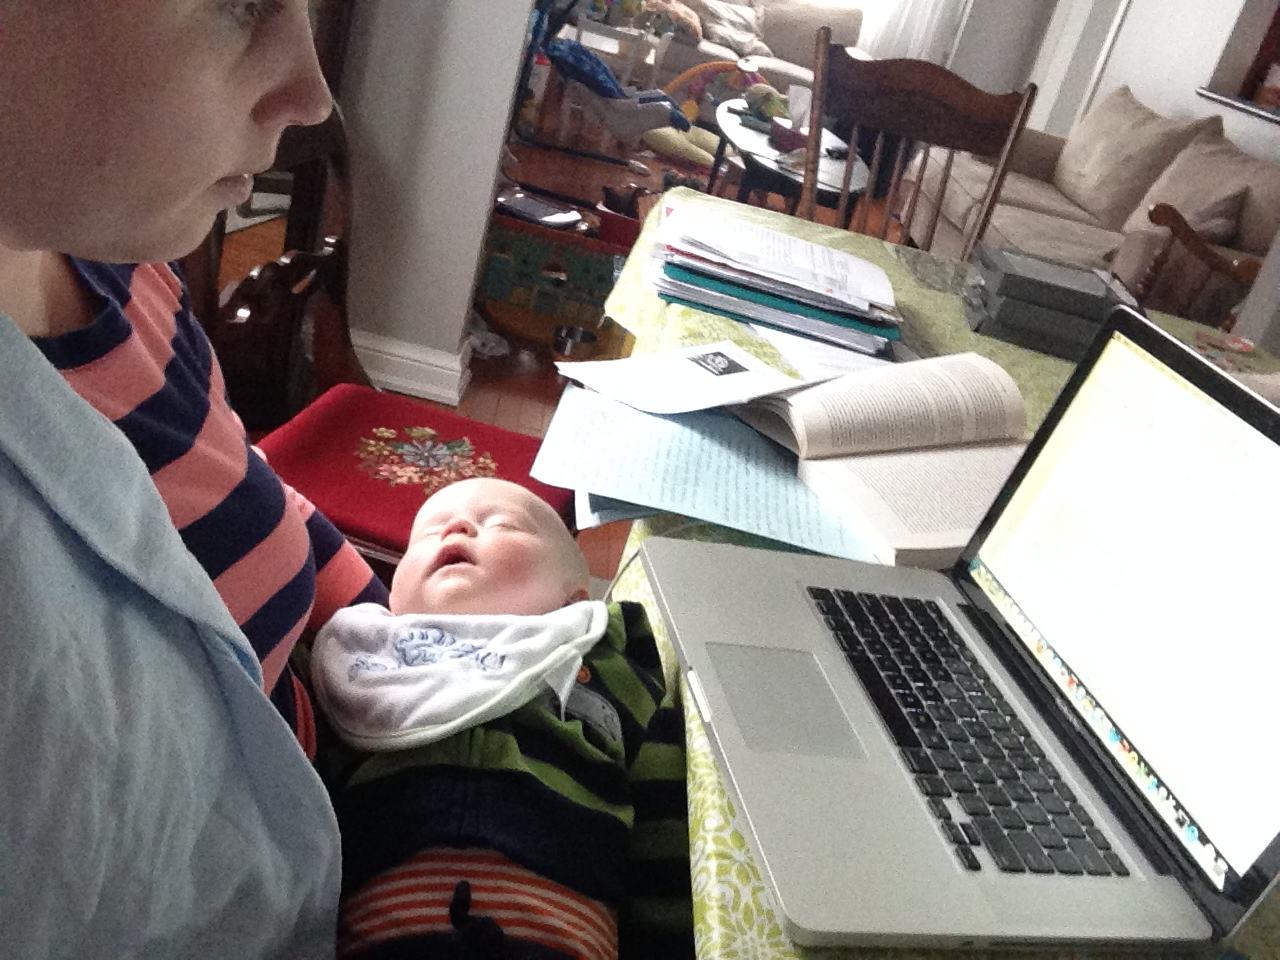 Parent holding baby and studying on laptop.